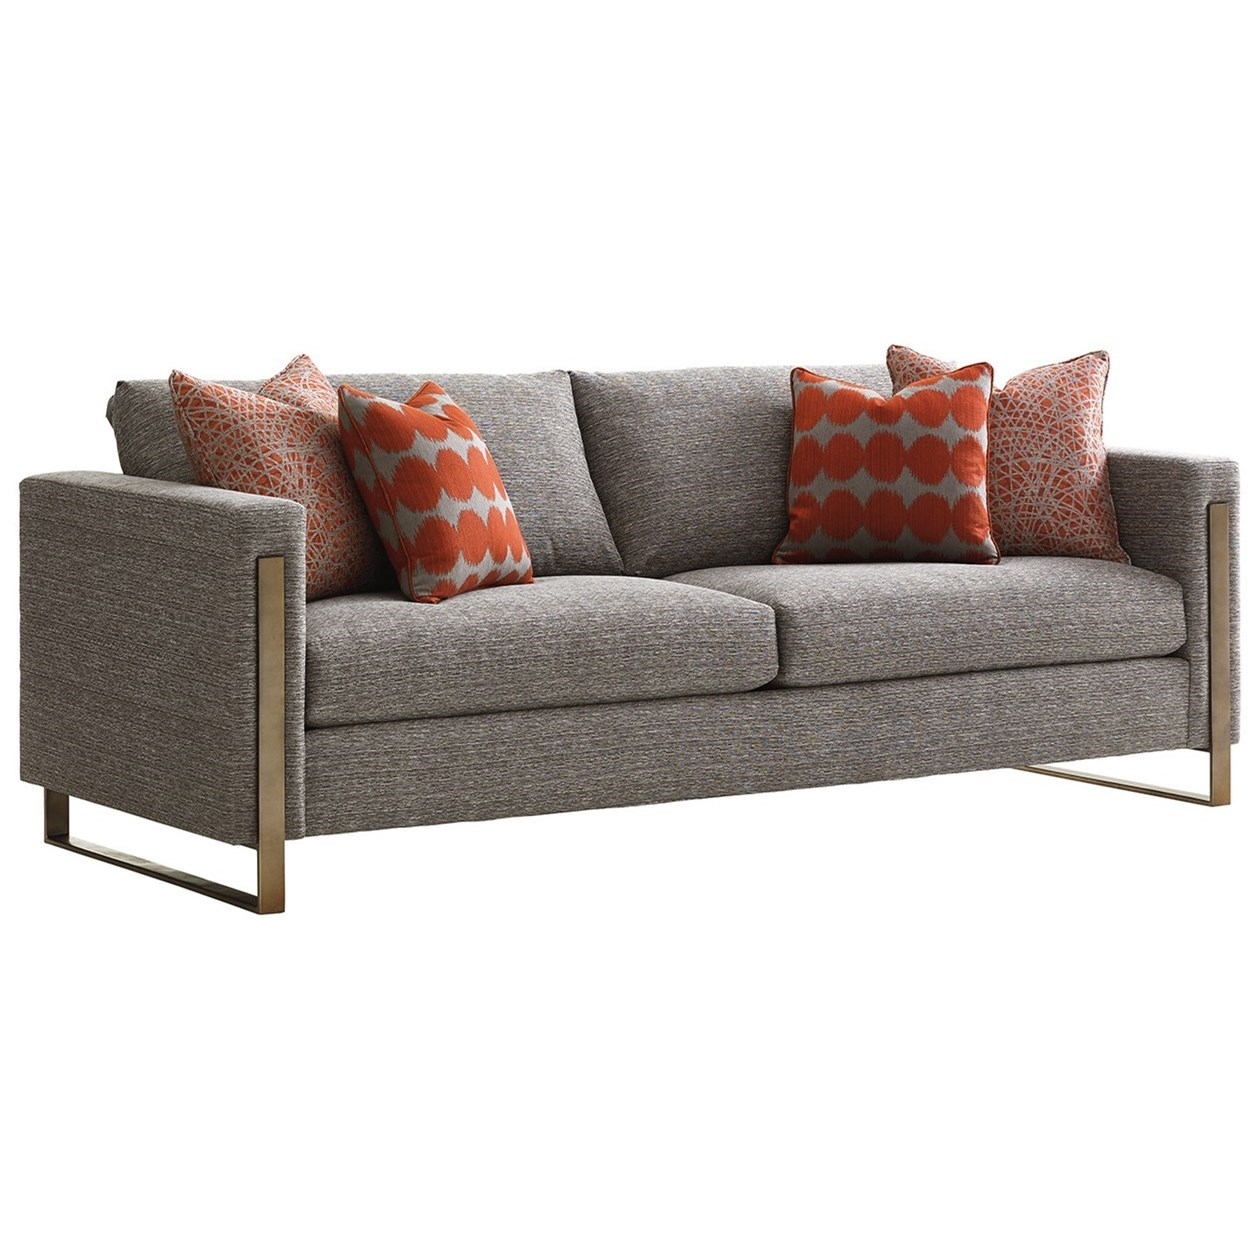 Shadow Play Nob Hill Sofa by Lexington at Jacksonville Furniture Mart